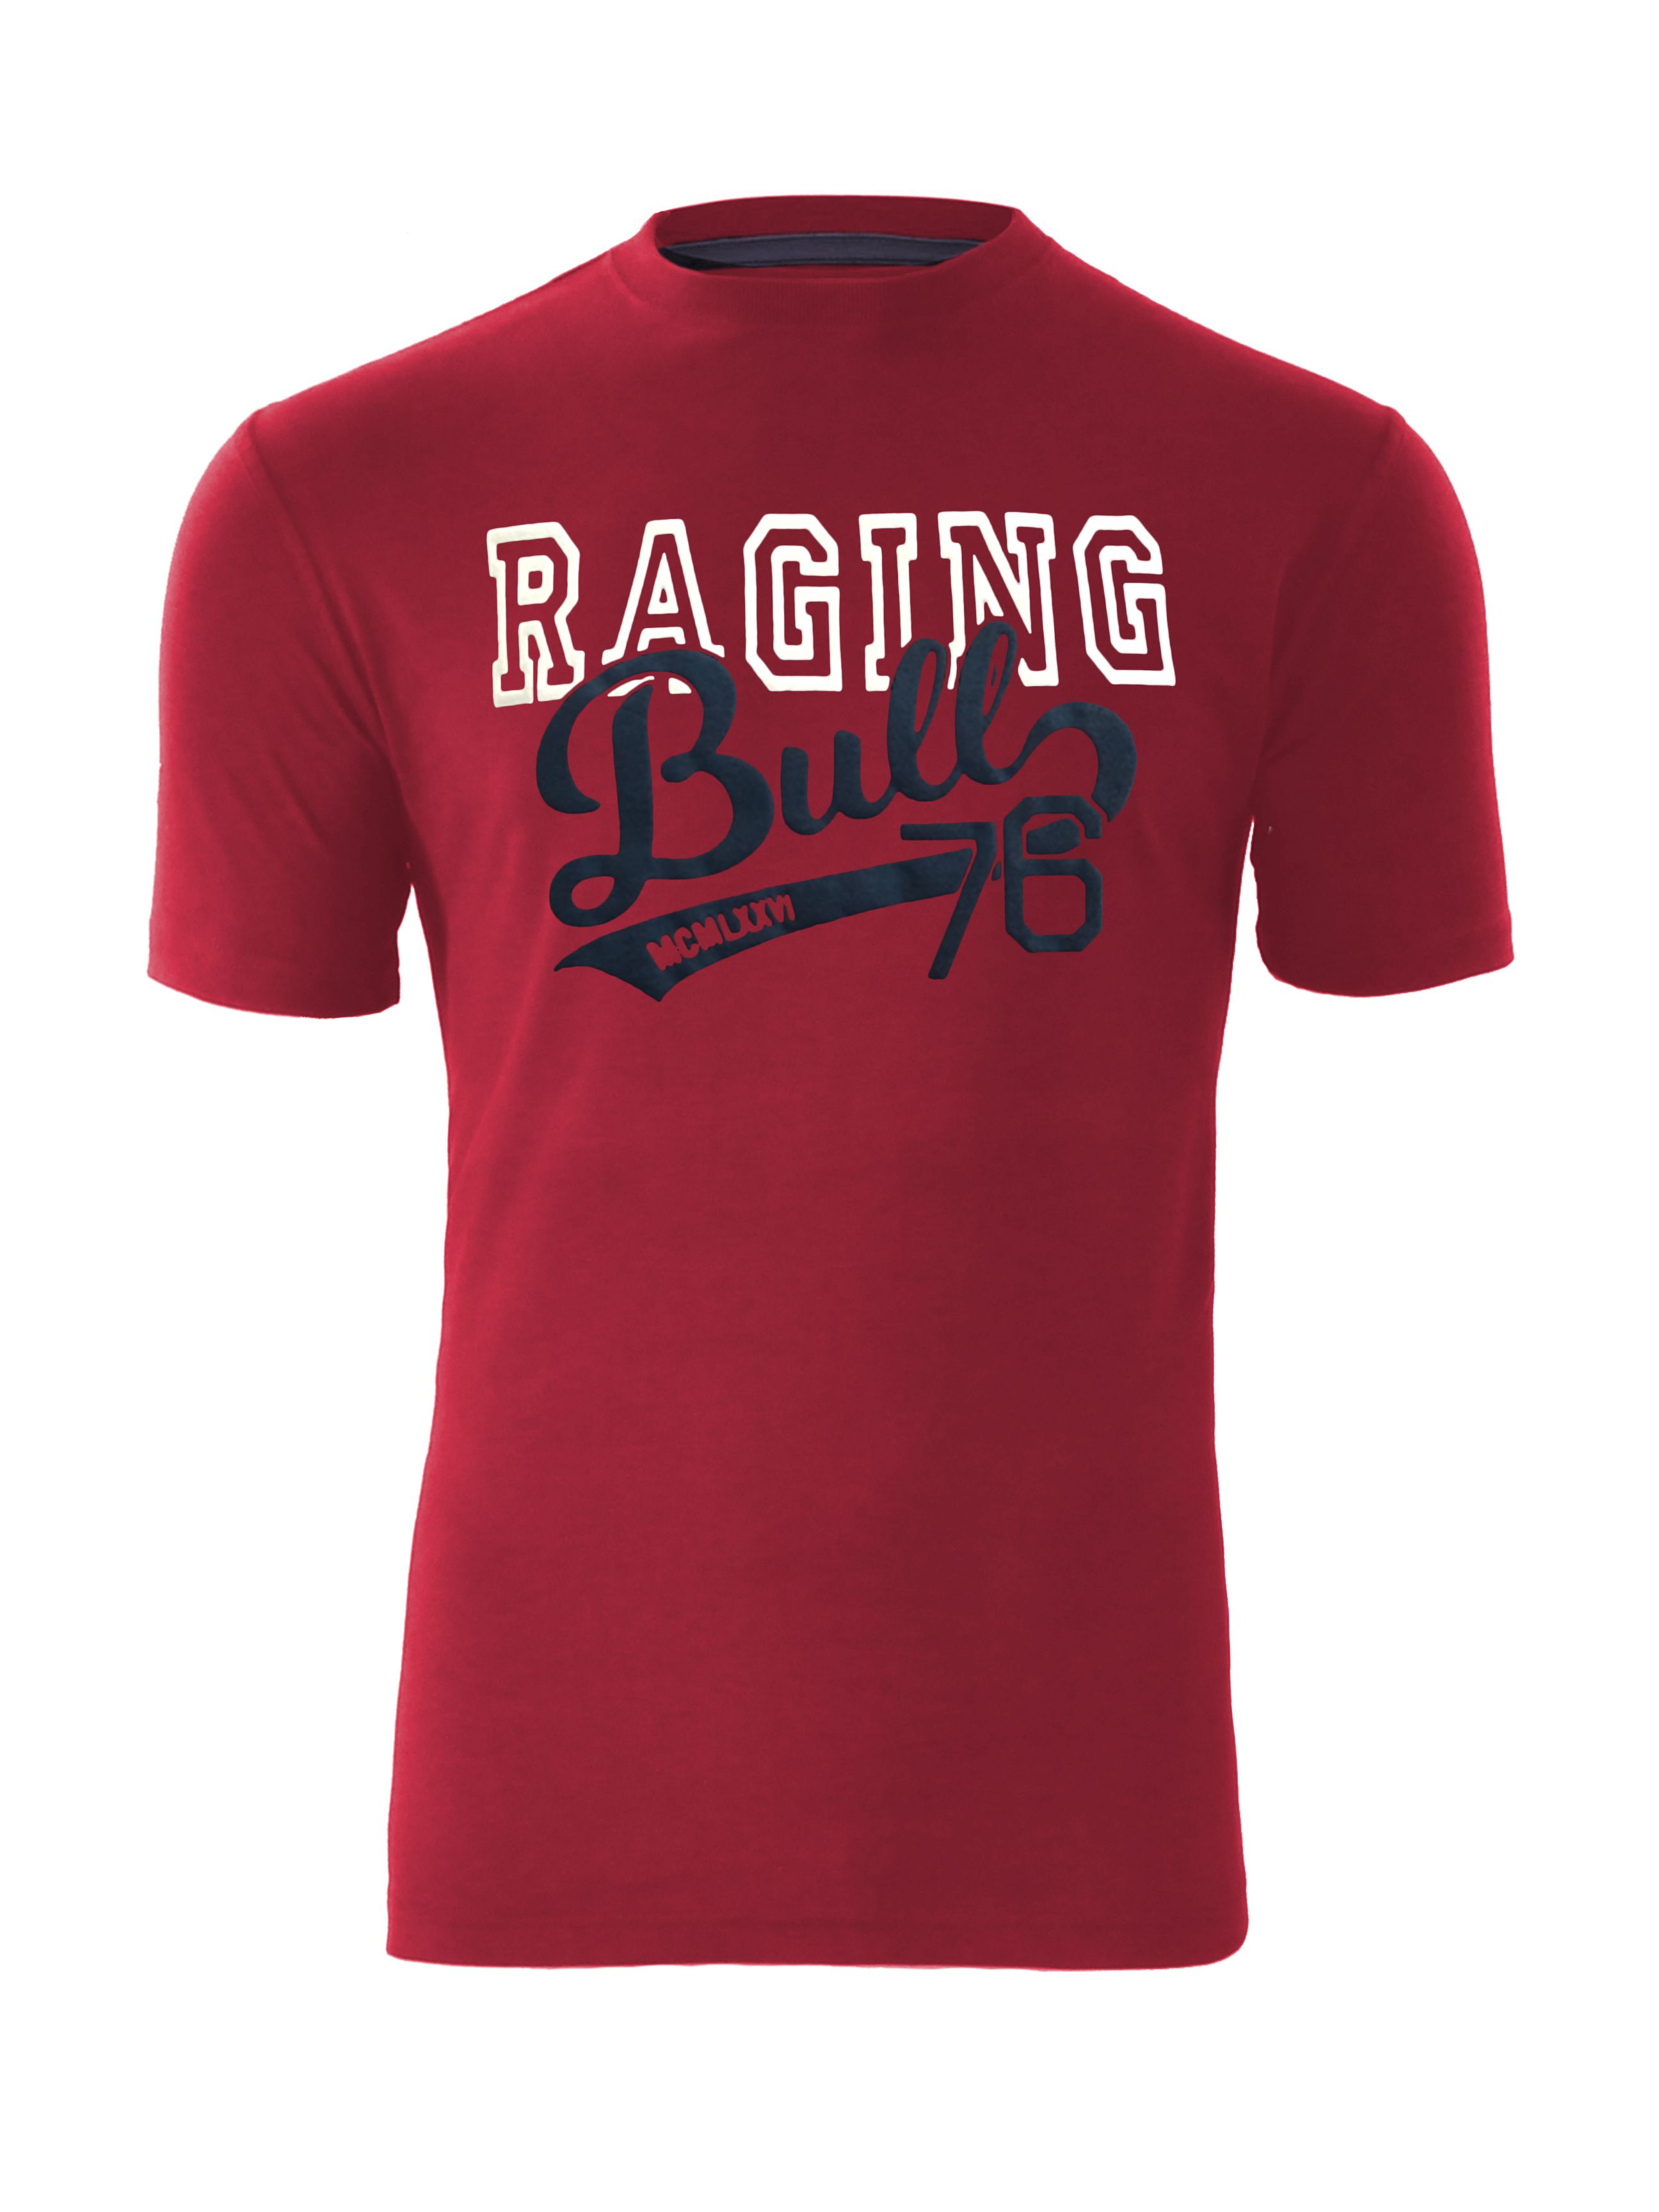 raging bull Men's Raging Bull Raging Bull College T-shirt, Red